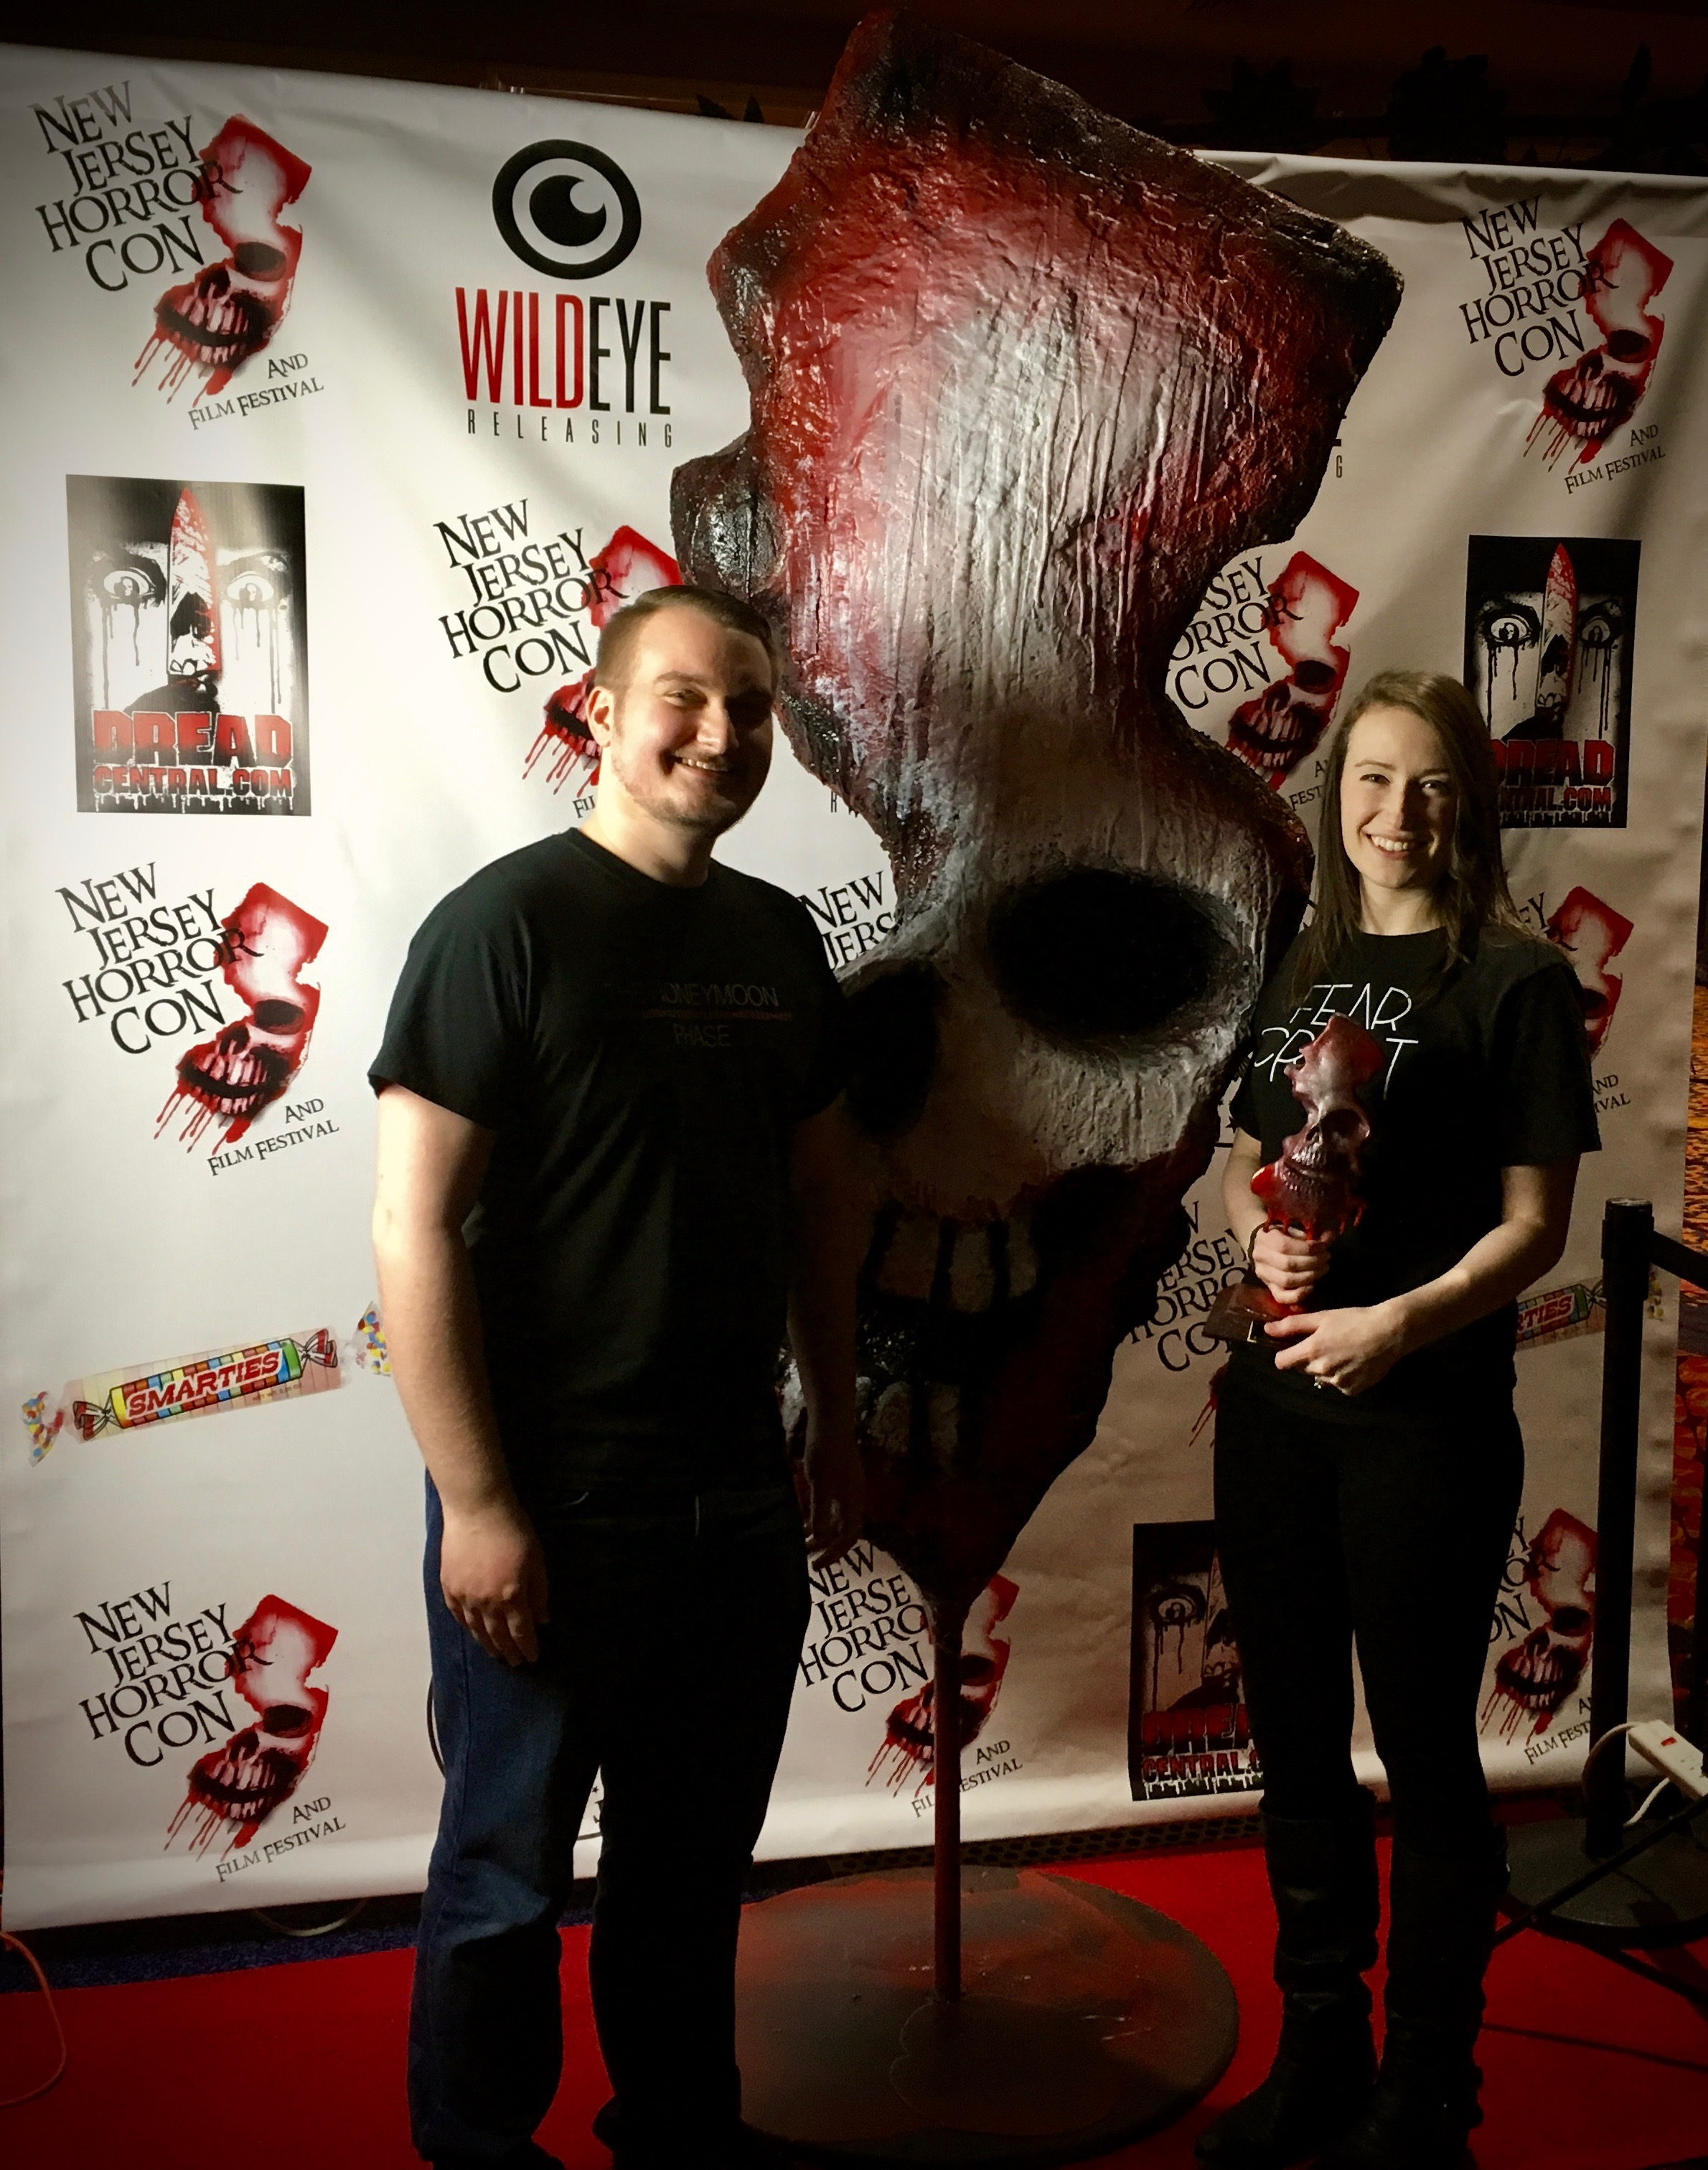 Phillip. G Carroll Jr and Chloe Carroll at NJ Horror Con and Festival in Atlantic City on March 31, 2019 |  Courtesy of Chloe Carroll